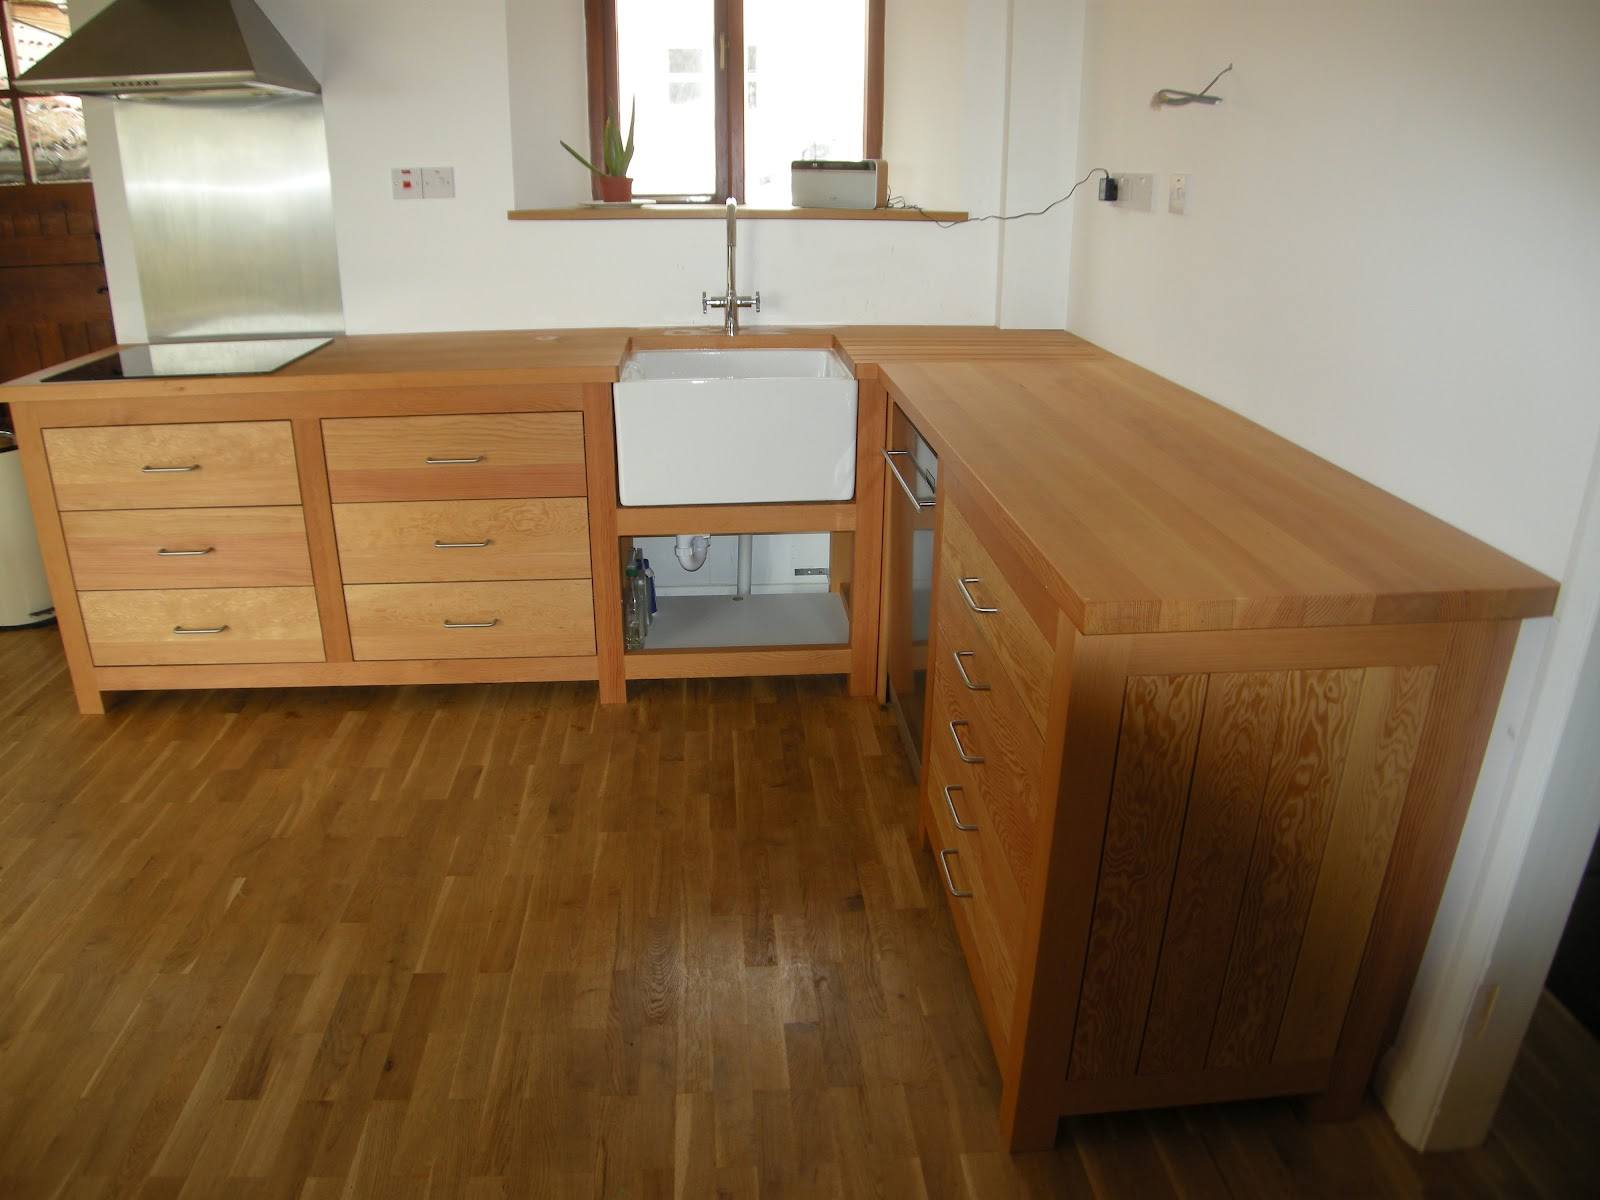 Free Standing Cabinets For Kitchen Safe Shoes Squirrel Brand Joinery Units